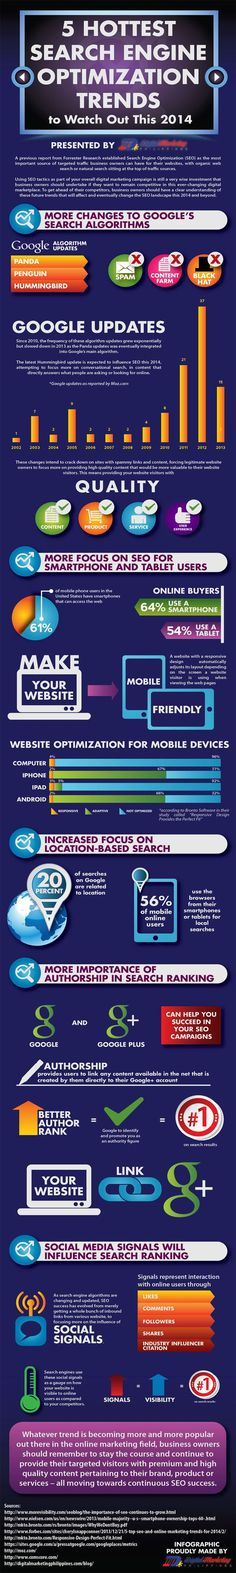 5 Search Engine Optimization Trends For 2014 (Infographic) #searchengineoptimization(interest),